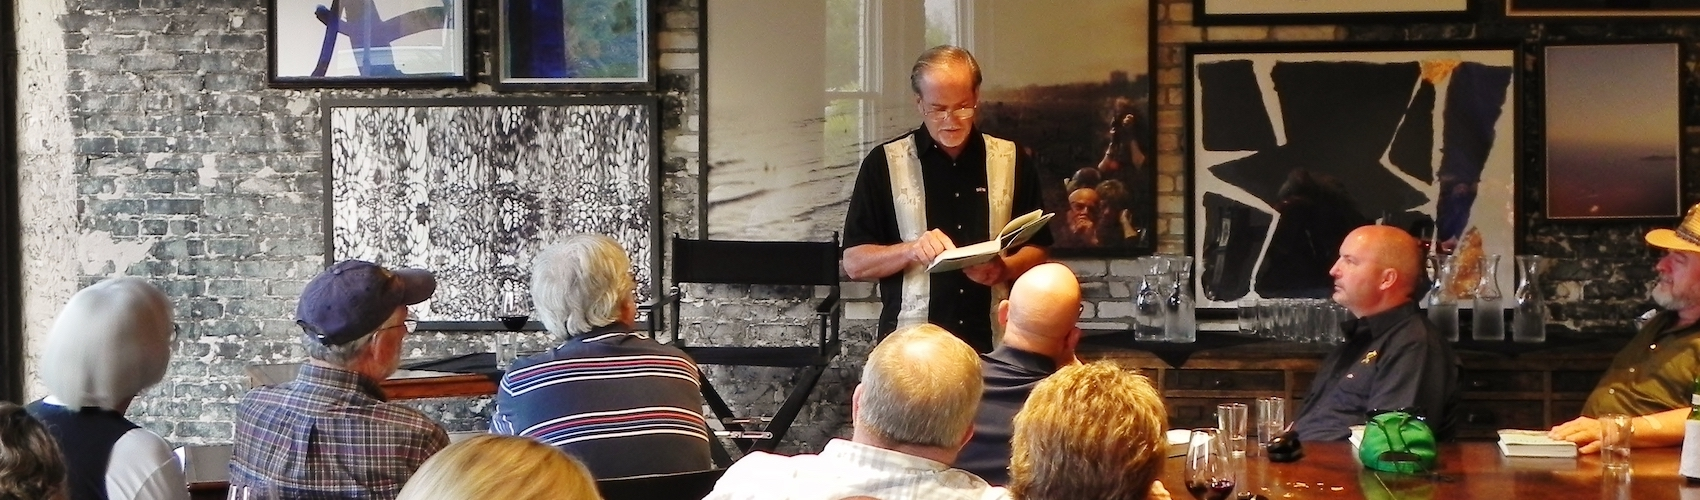 Author Robert Macomber reads aloud from Honoring the Enemy at Oxford Exchange book signing. <span class=&apos;image-credits&apos;>Nancy Glickman</span>